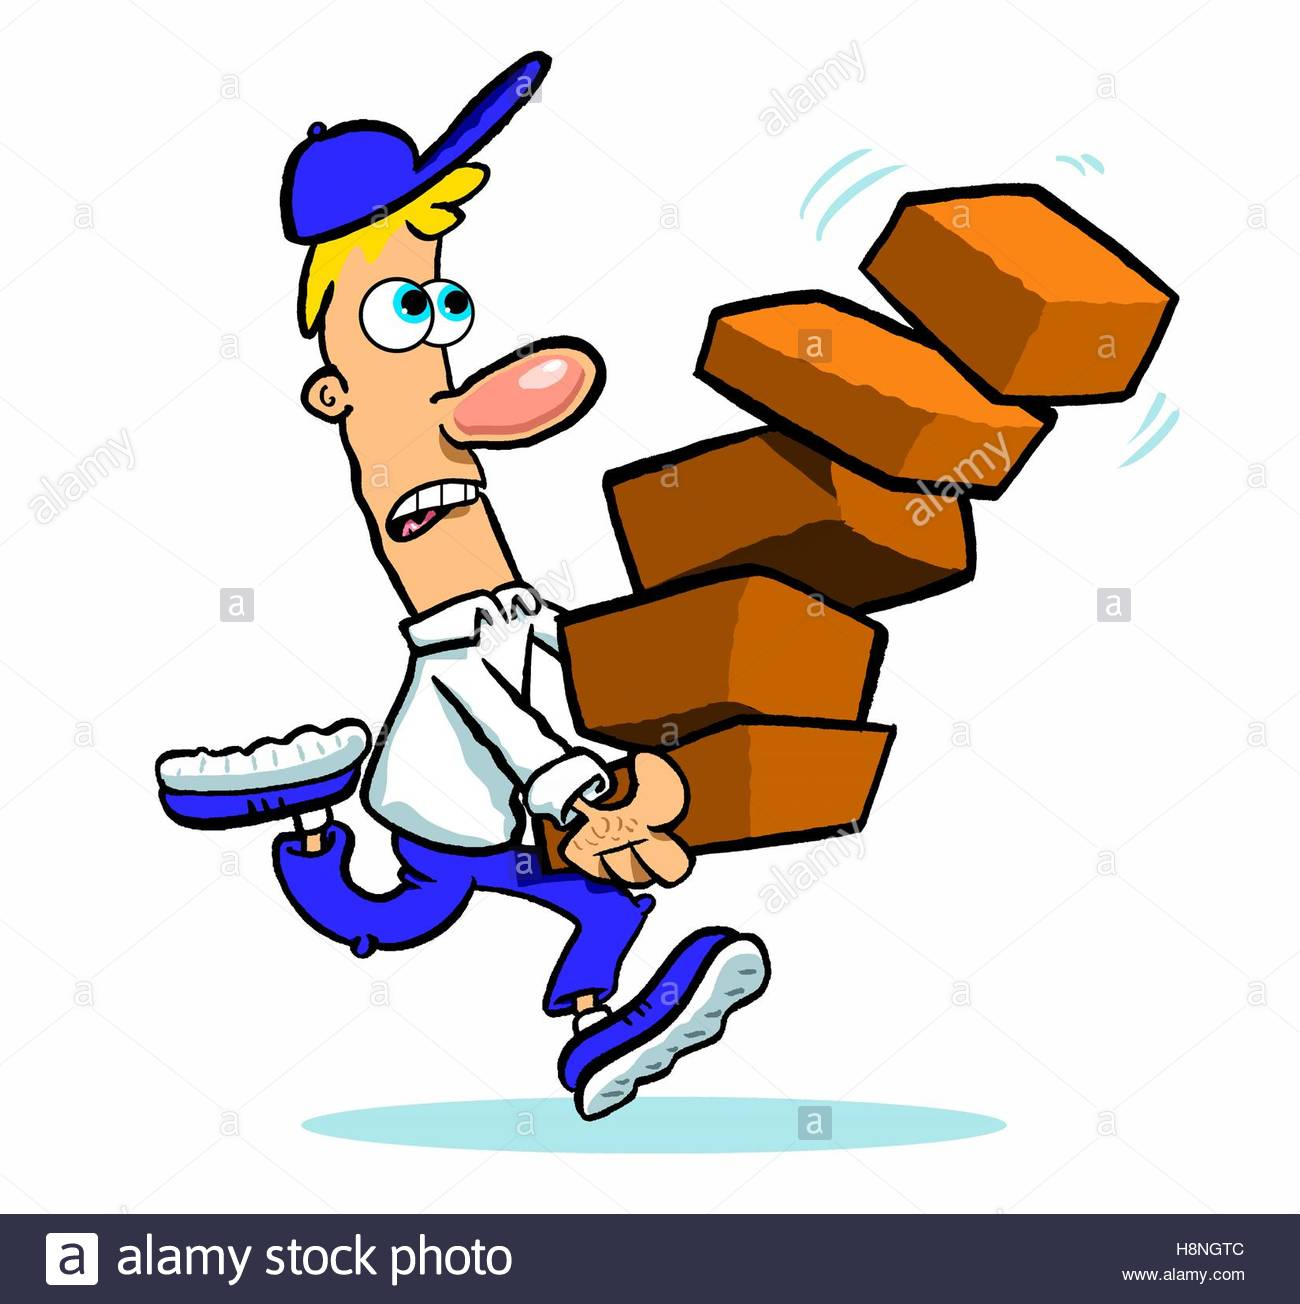 1300x1304 Cartoon Man Running With Stack Of Falling Bricks Or Boxes Stock